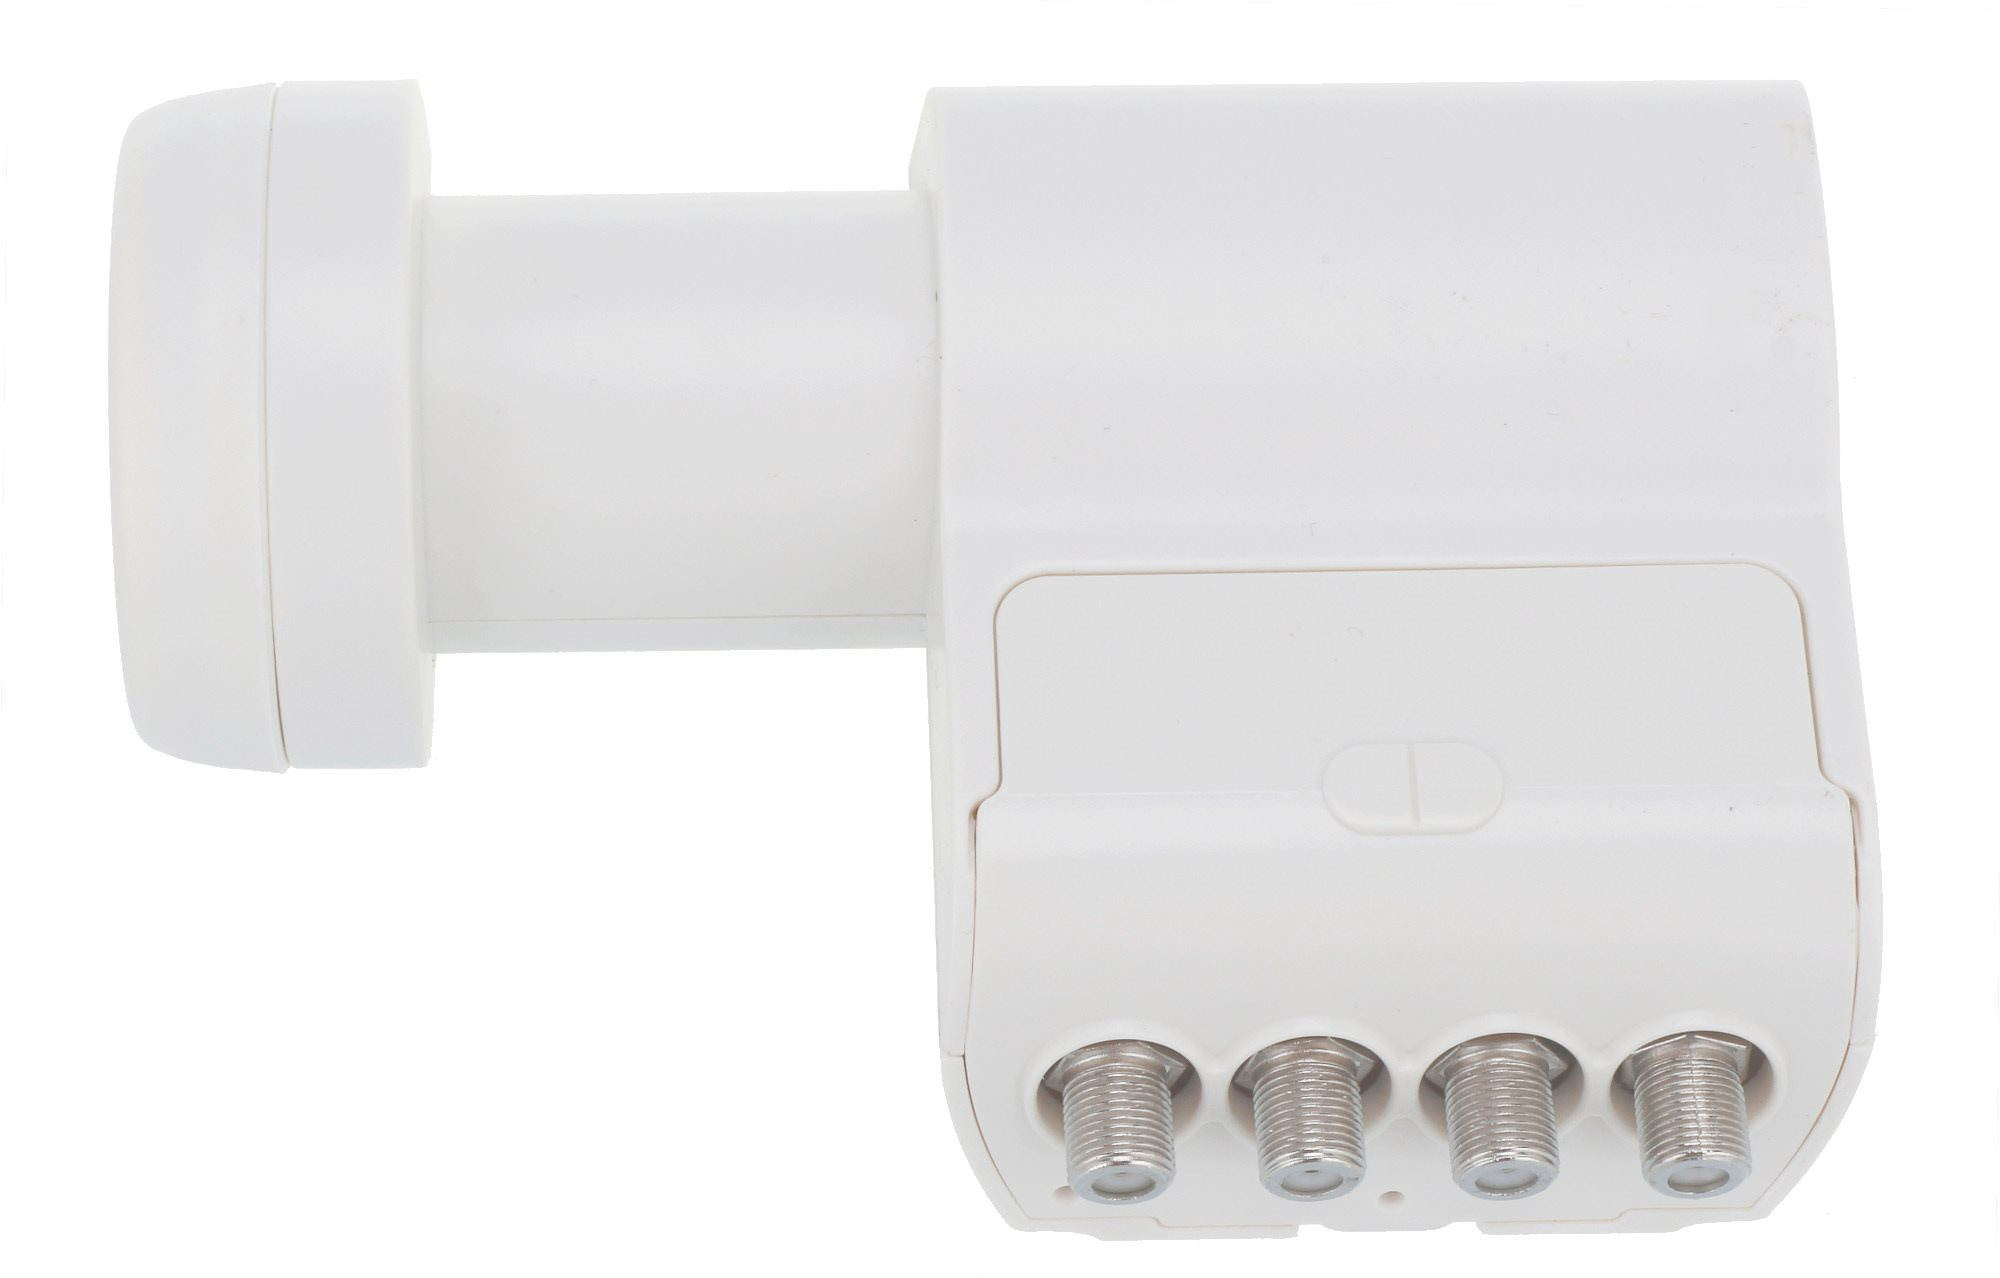 Maximum ST-Line 14 Quad LNB 0.1dB